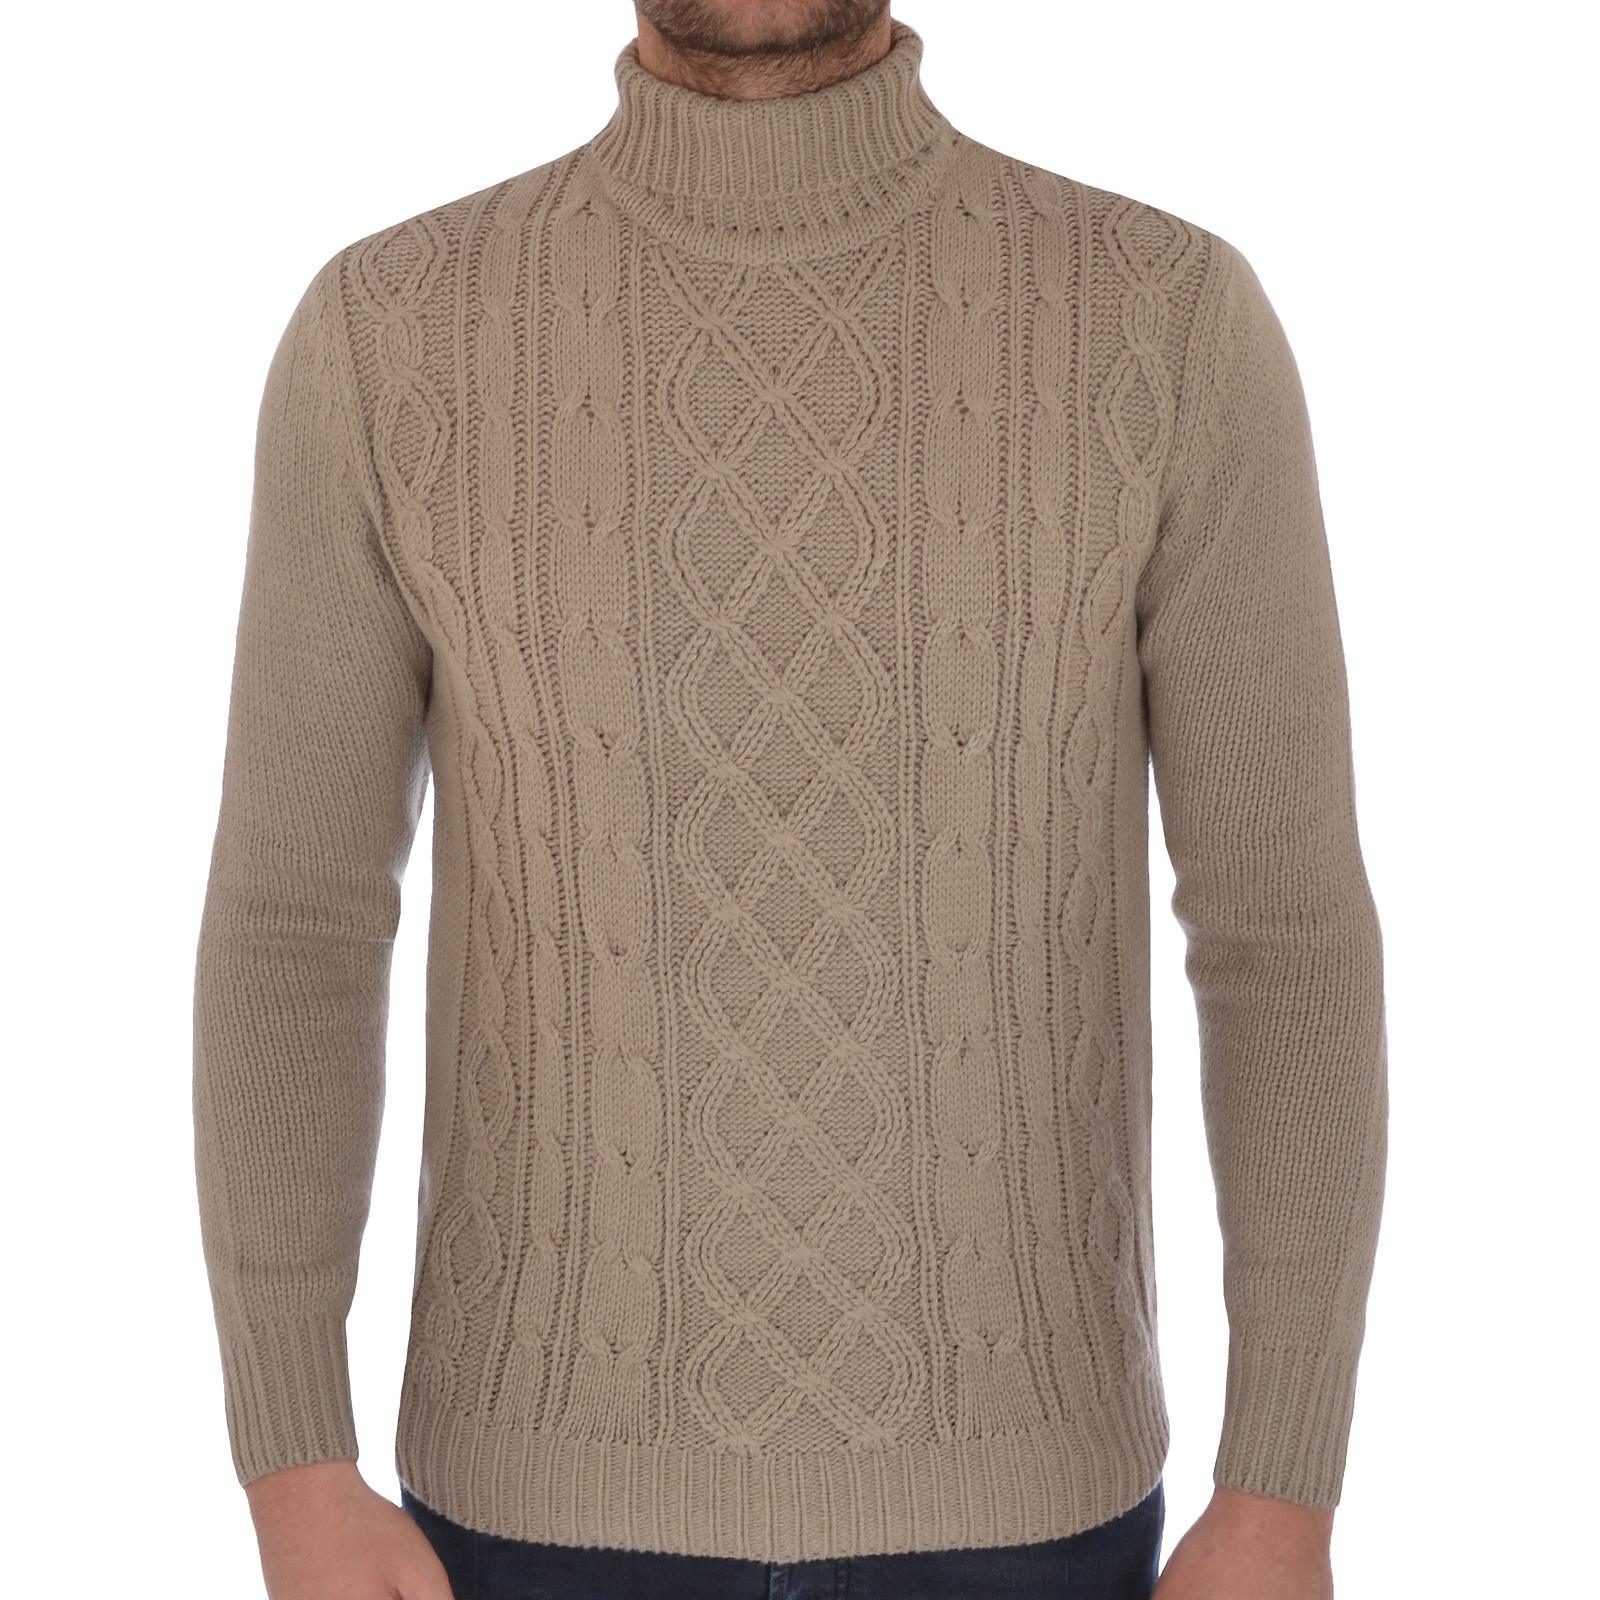 Soul Star Mens Roll Polo Turtle Neck Knitted Jumper Sweater Top eBay